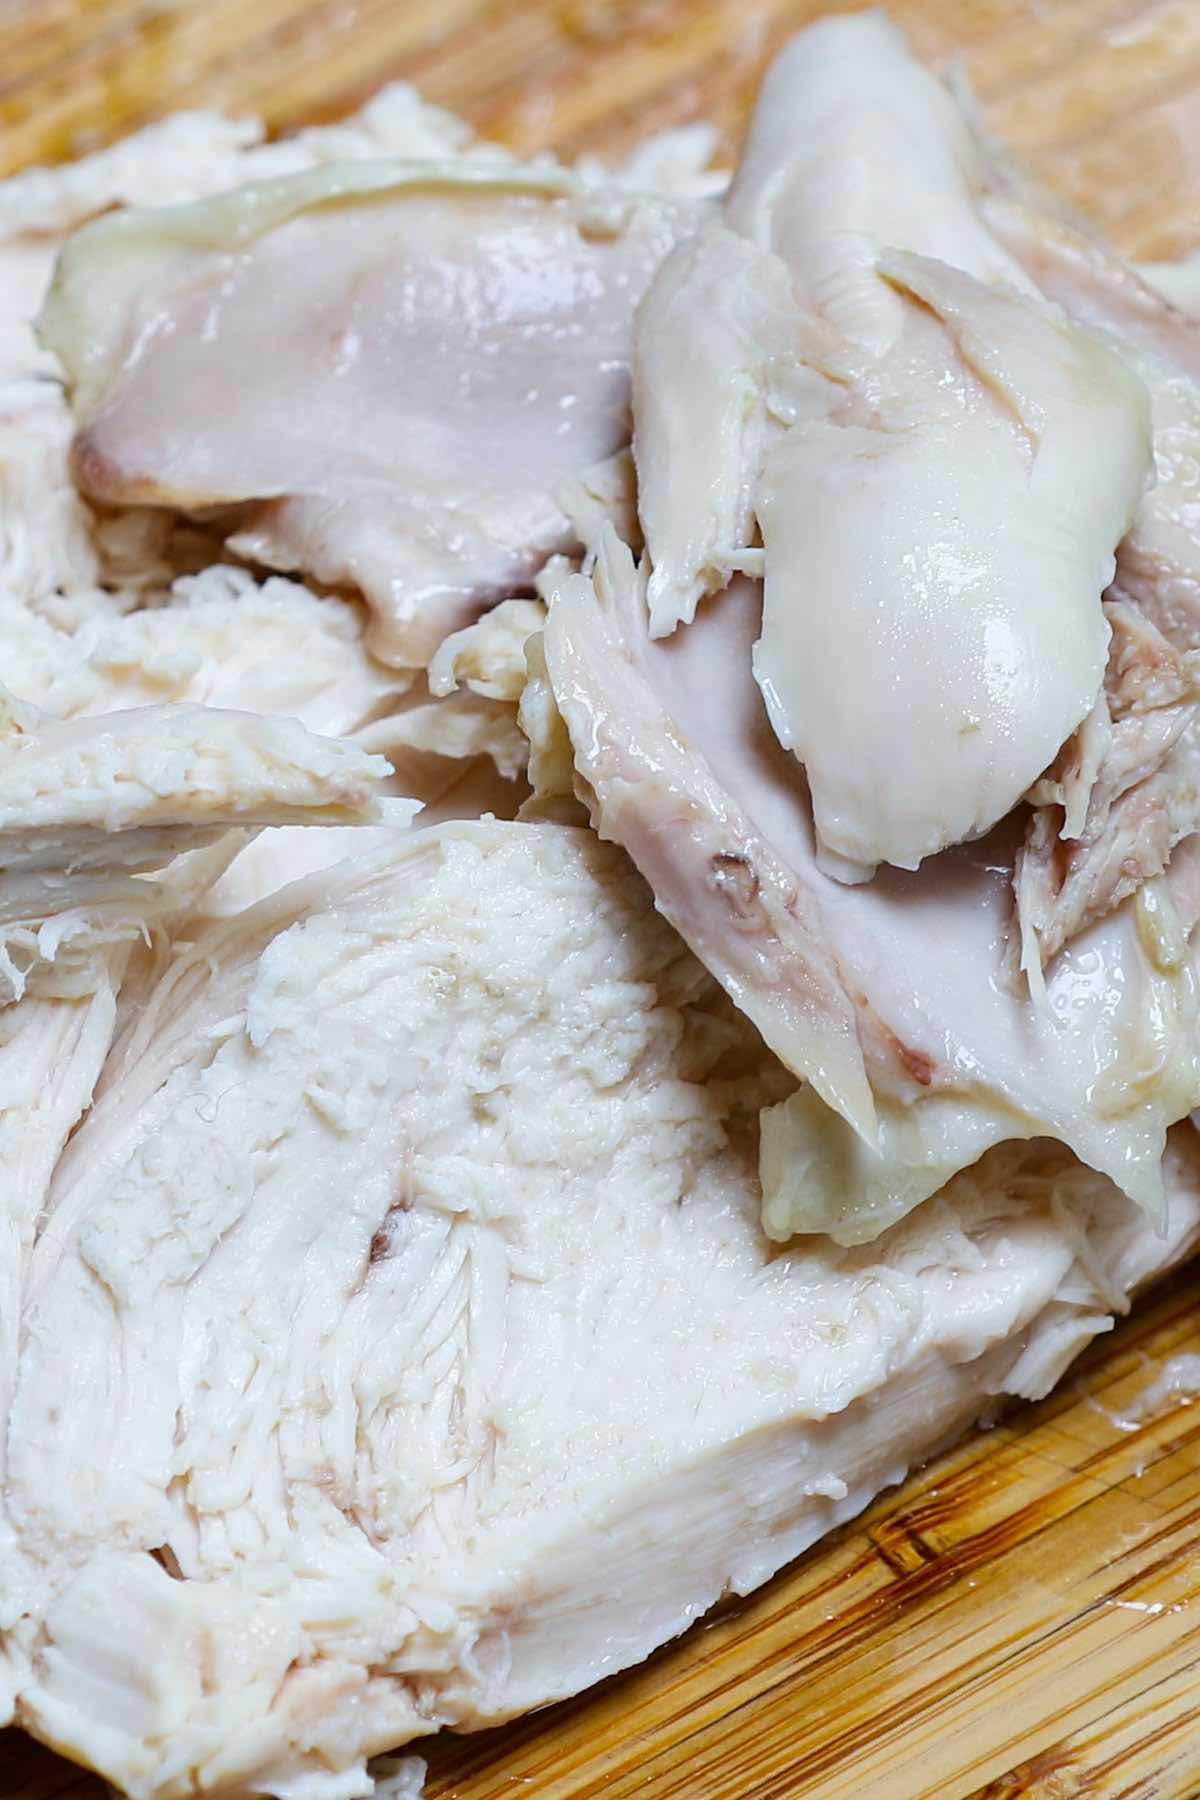 Tender and juicy boiled chicken carved into slices for serving